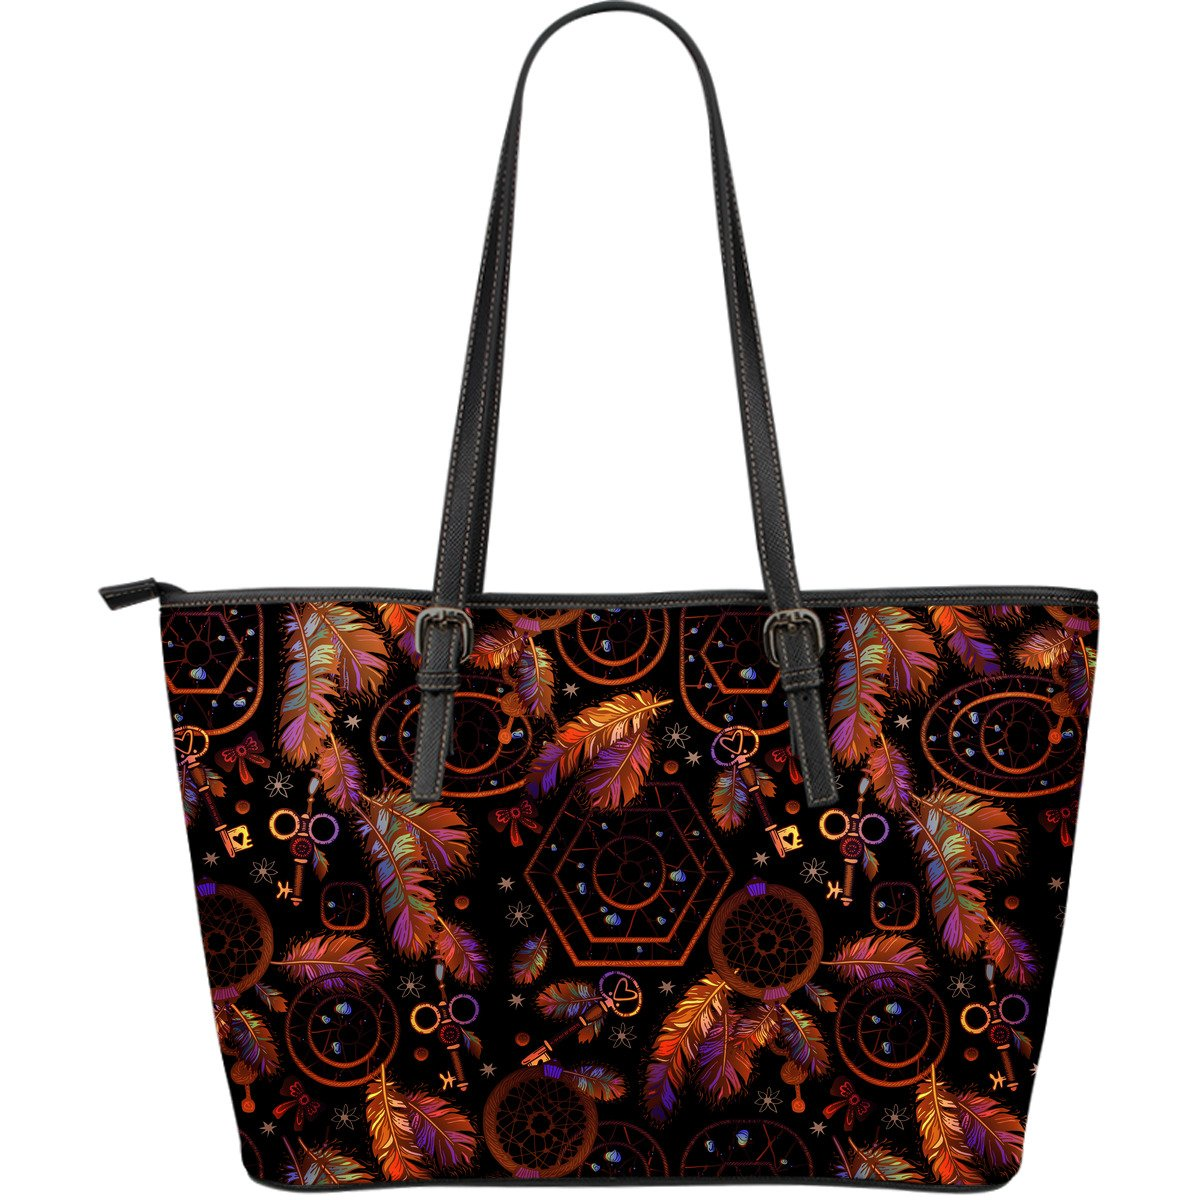 Dream catcher native american Large Leather Tote Bag